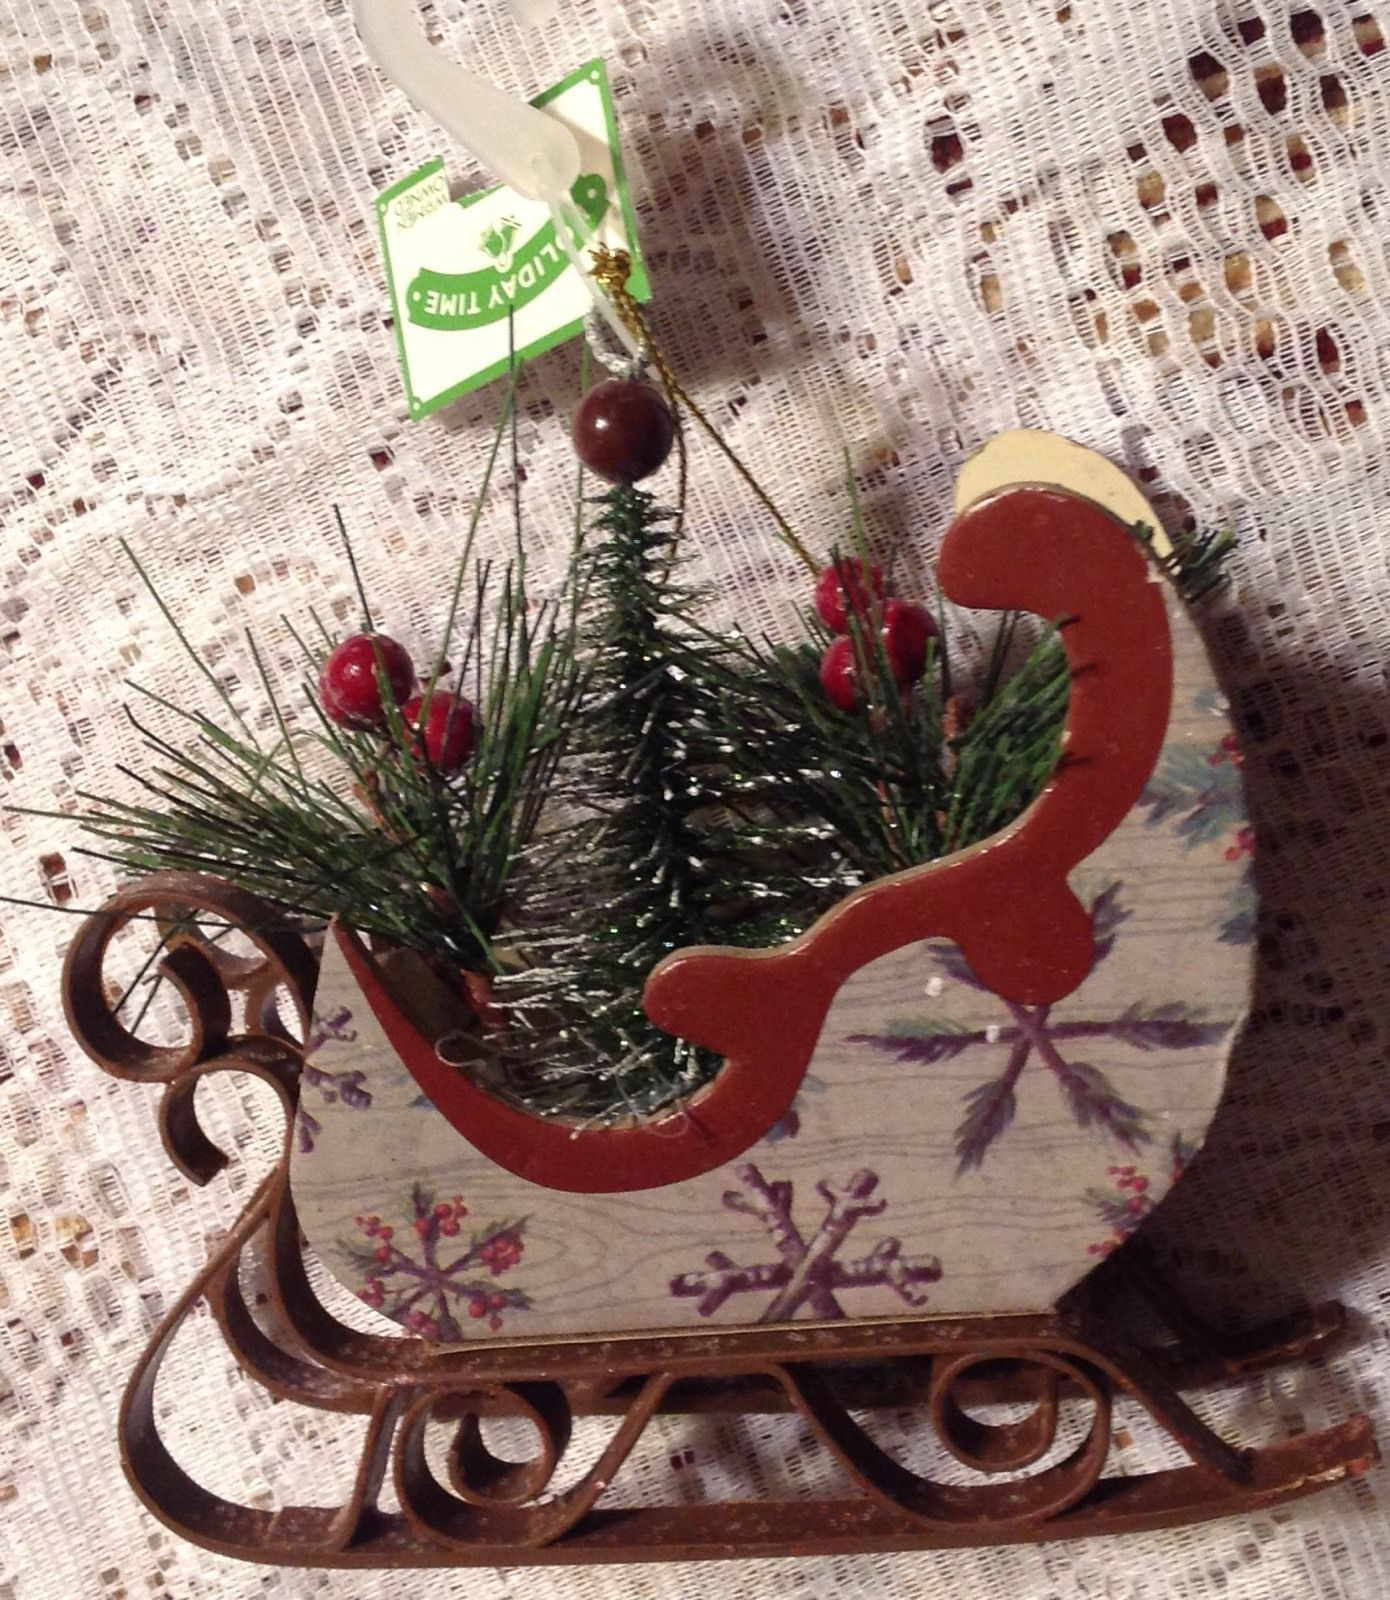 Christmas Ornament Sleigh Filled with Pine Boughs Tree Holly (6 Pack)